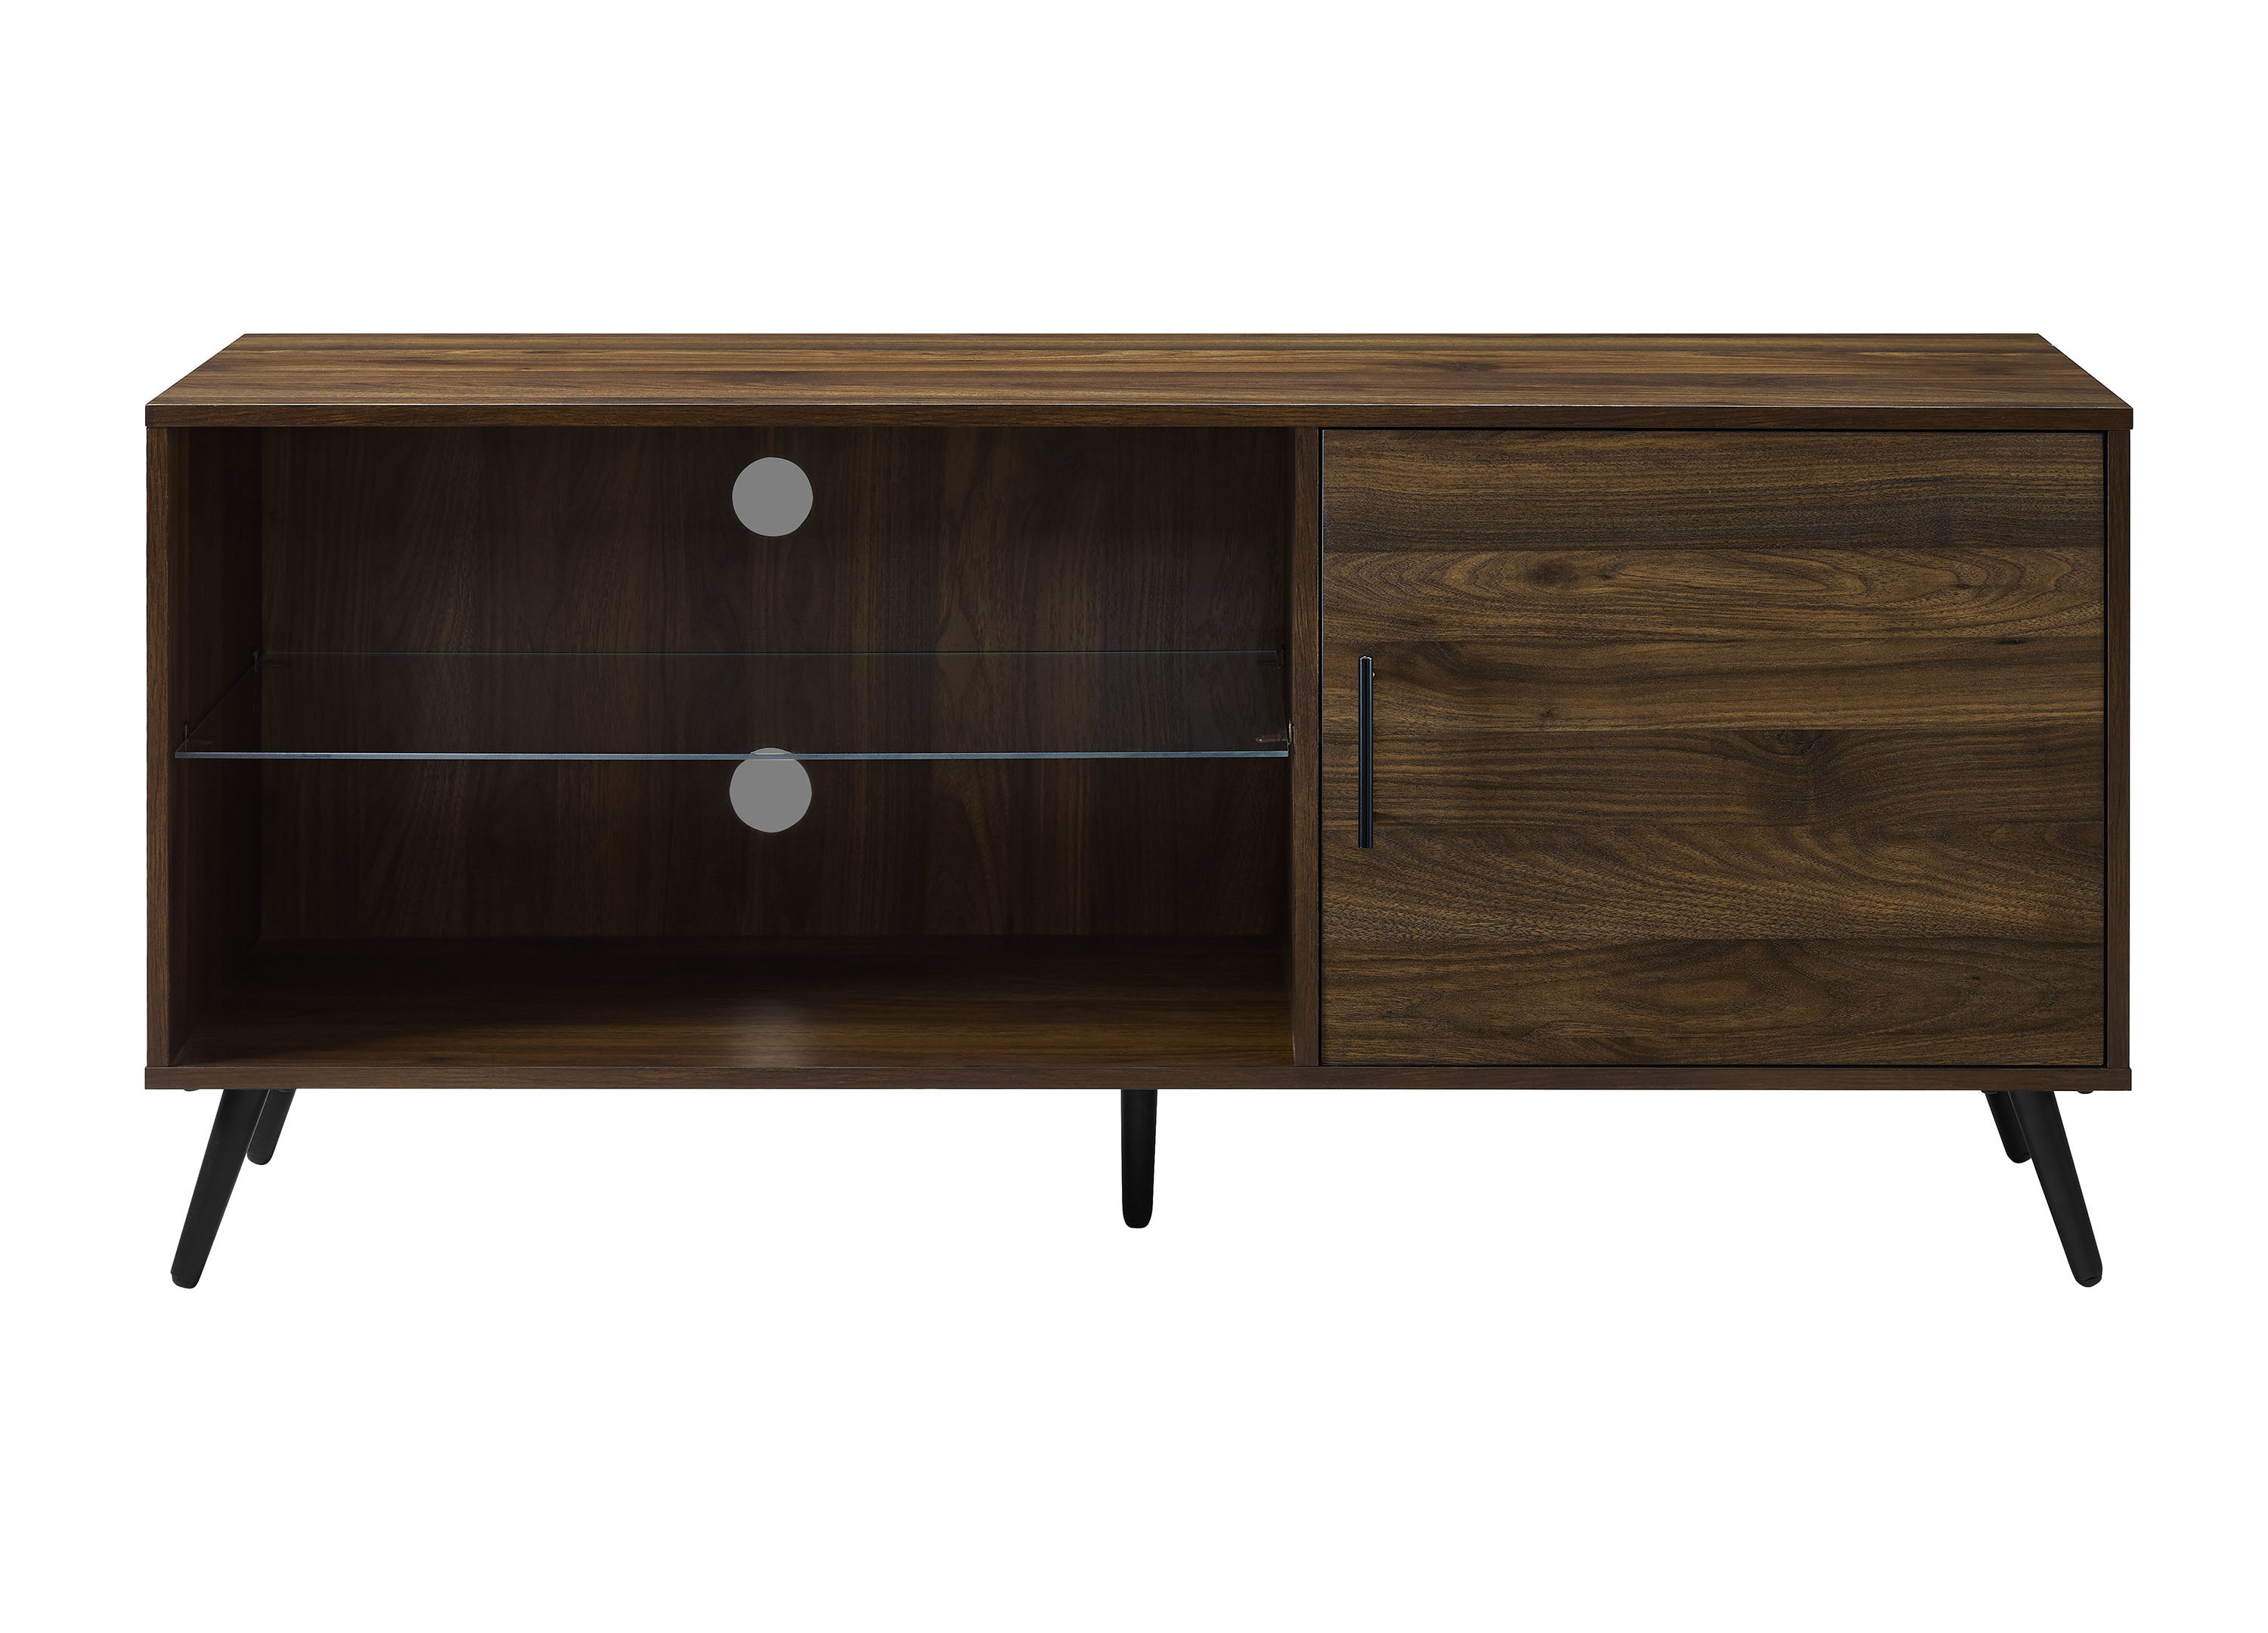 2017 Modern Tv Stands & Entertainment Centers (View 1 of 20)